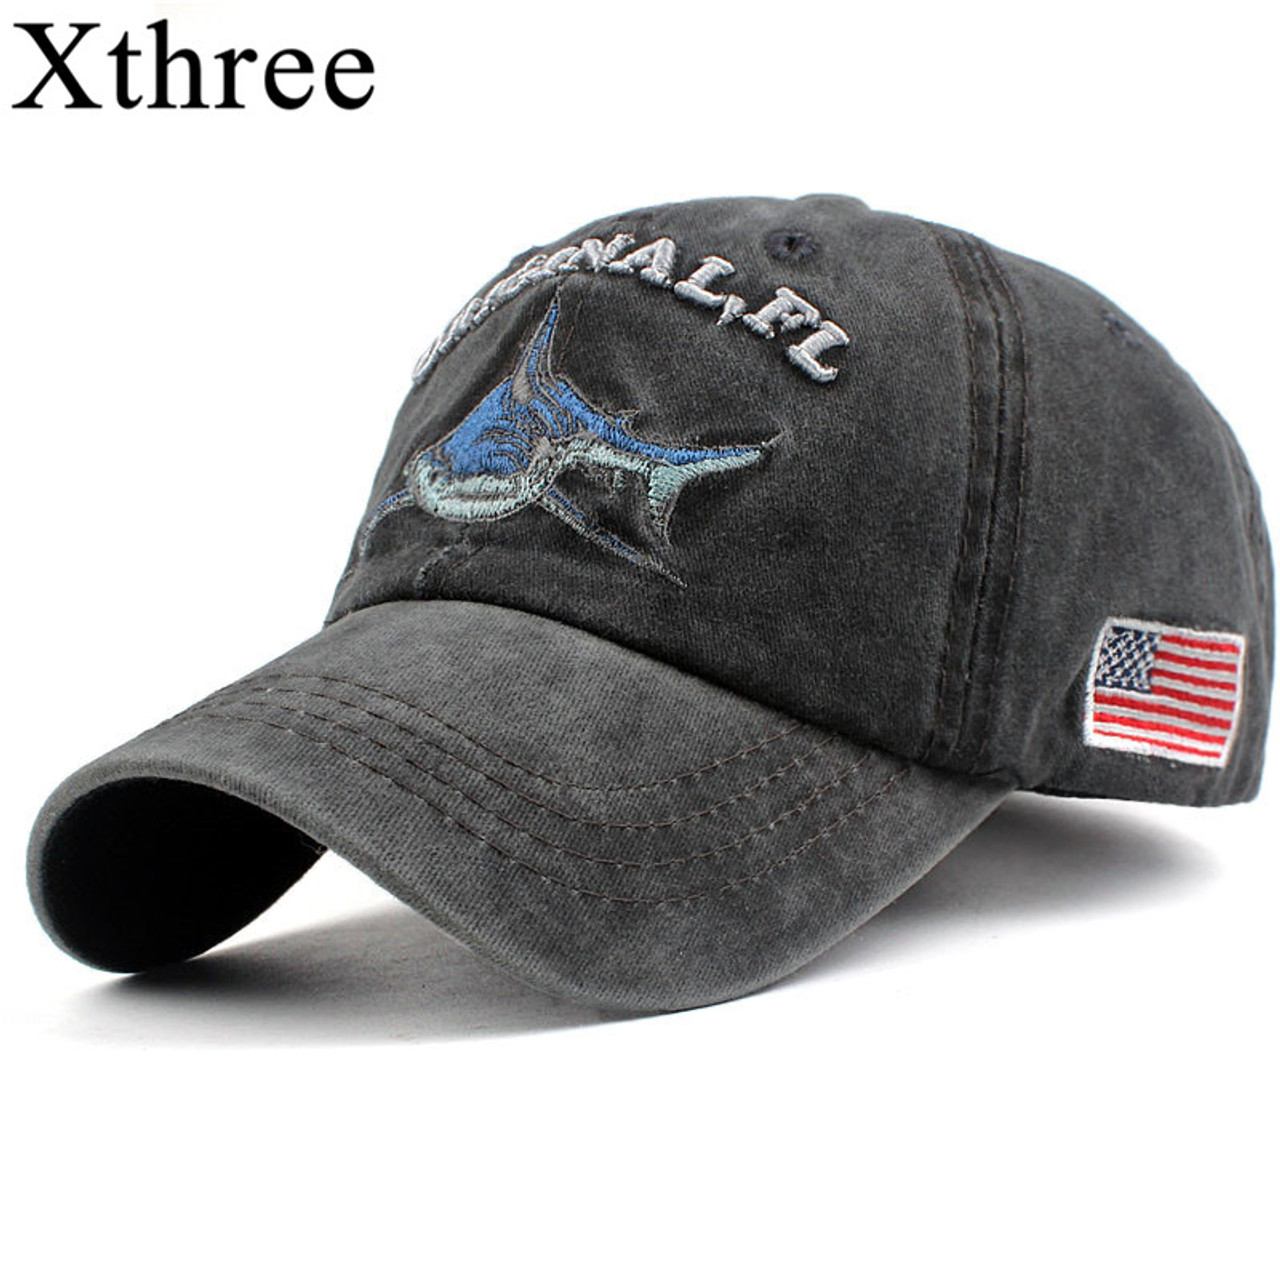 Xthree 100% washed cotton men baseball cap fitted cap snapback hat for  women gorras casual ... 44c99883671c